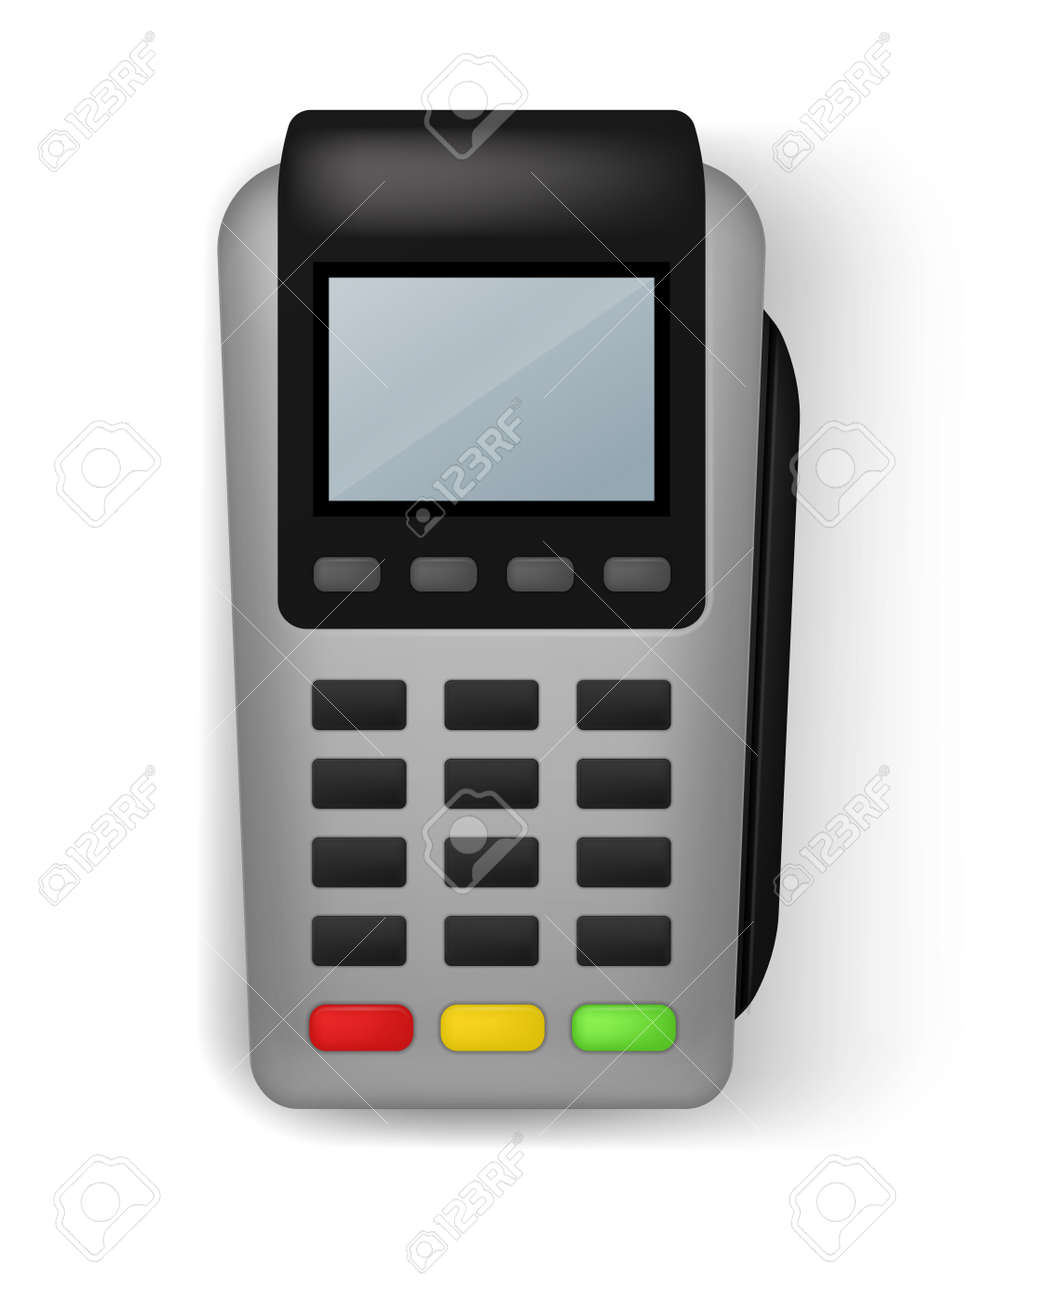 Payment terminal. Realistic banking electronic equipment. wireless gadget to pay for purchases. Financial transaction. Device for money transfer with credit cards. Vector illustration - 171599870